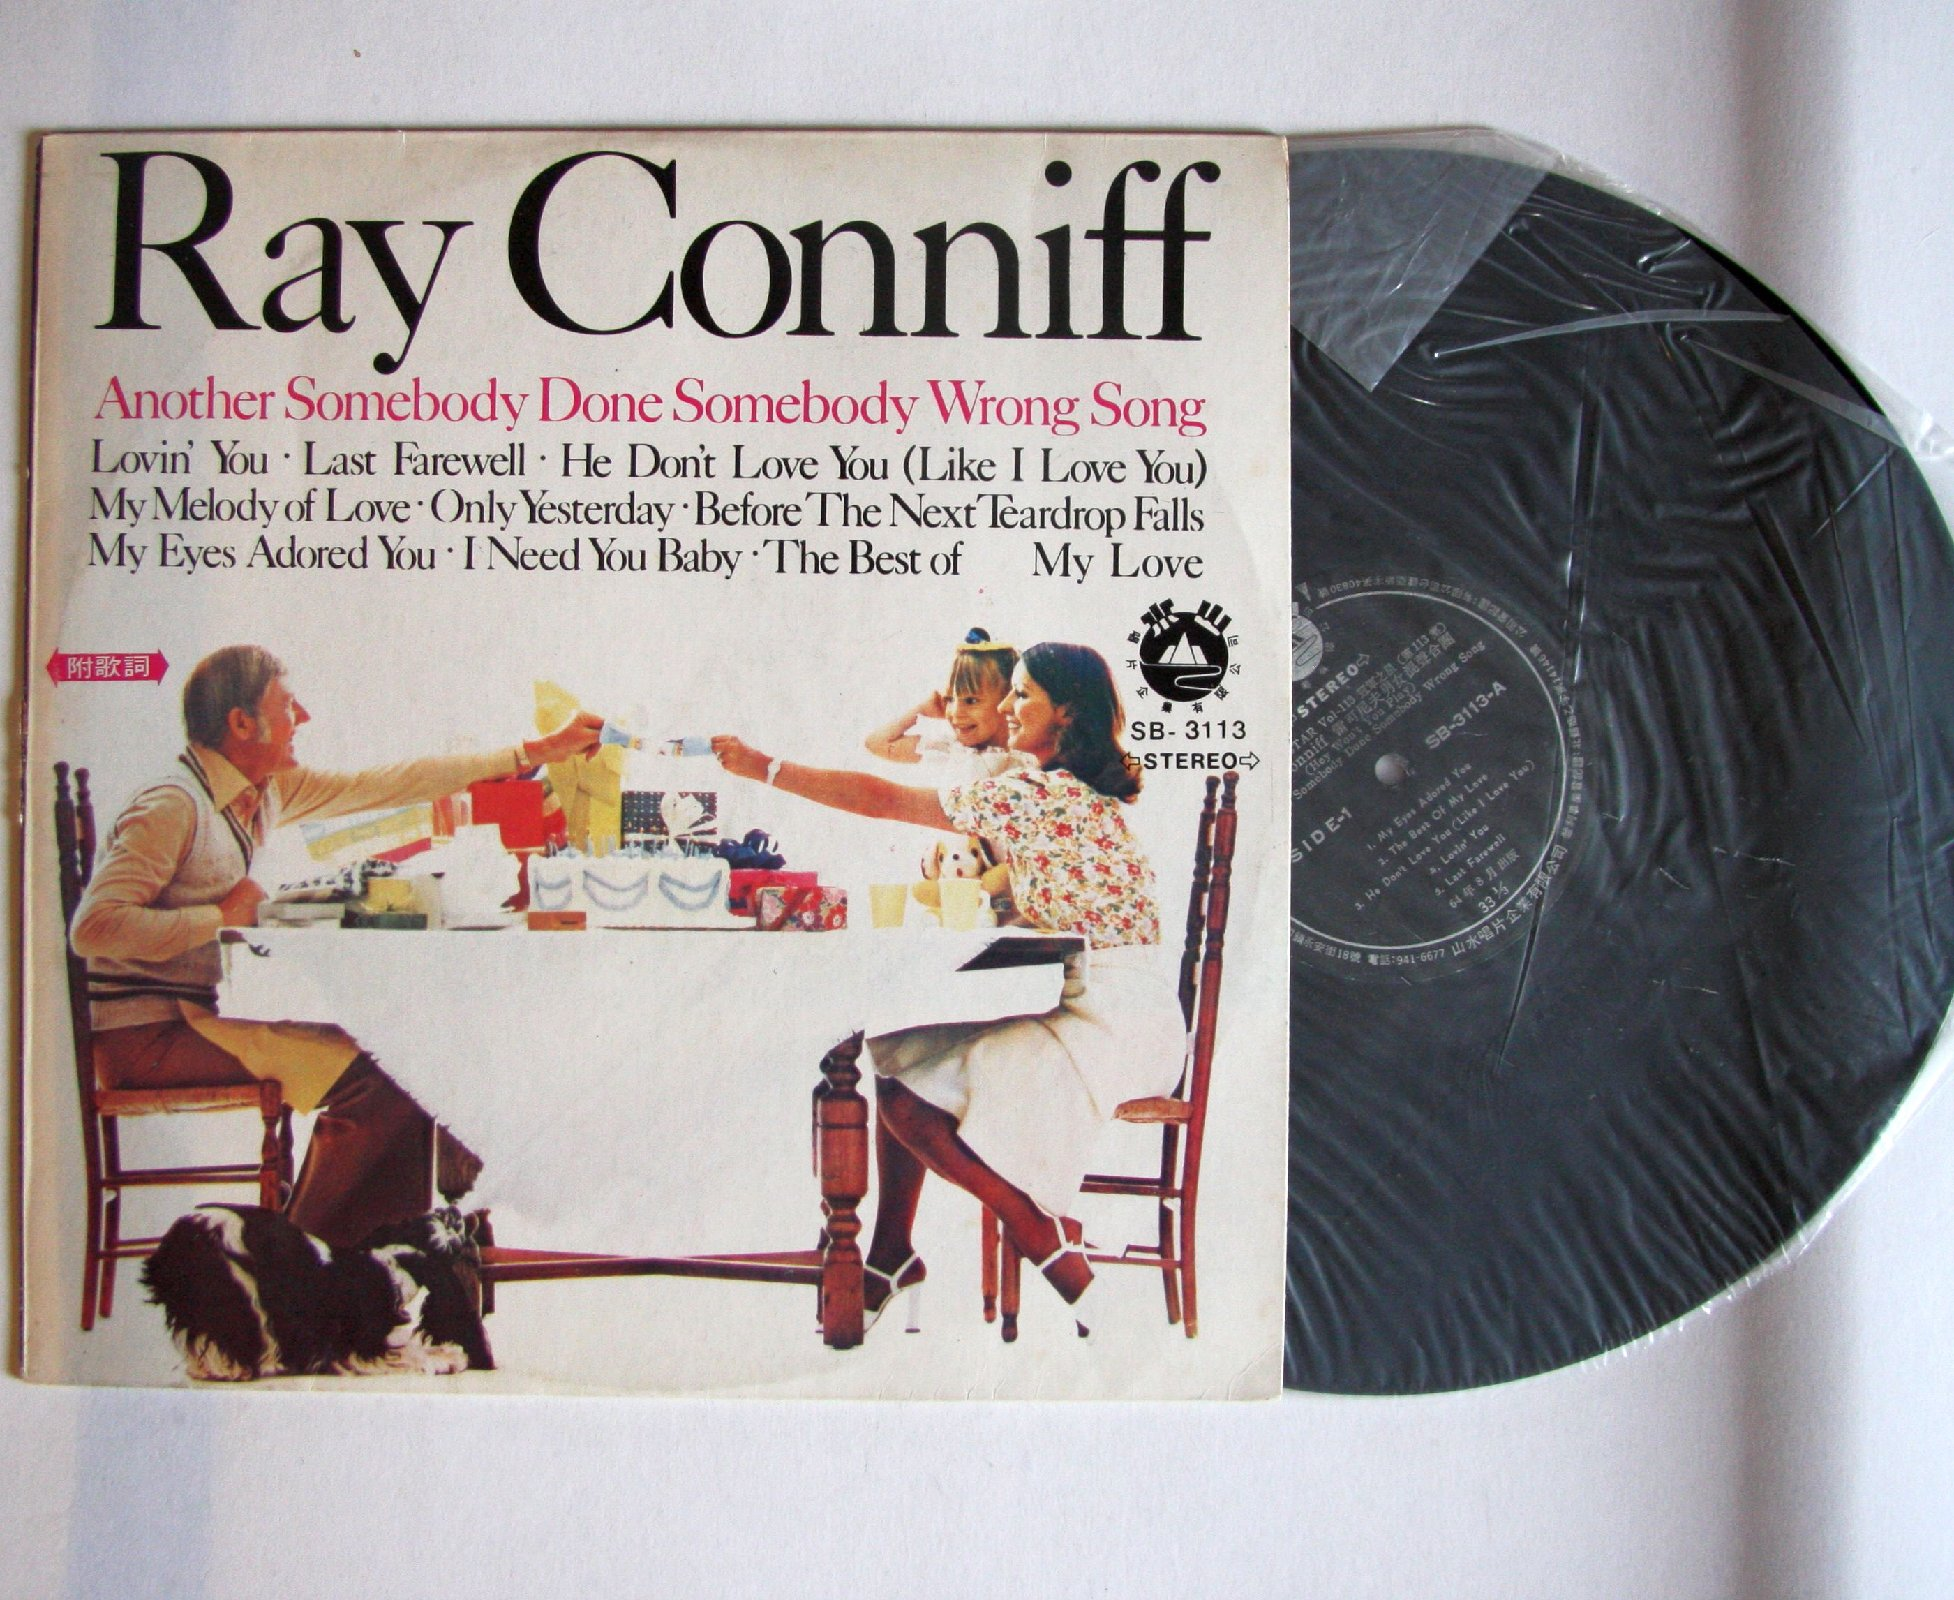 Another Somebody Done Somebody Wrong Song - Ray Conniff